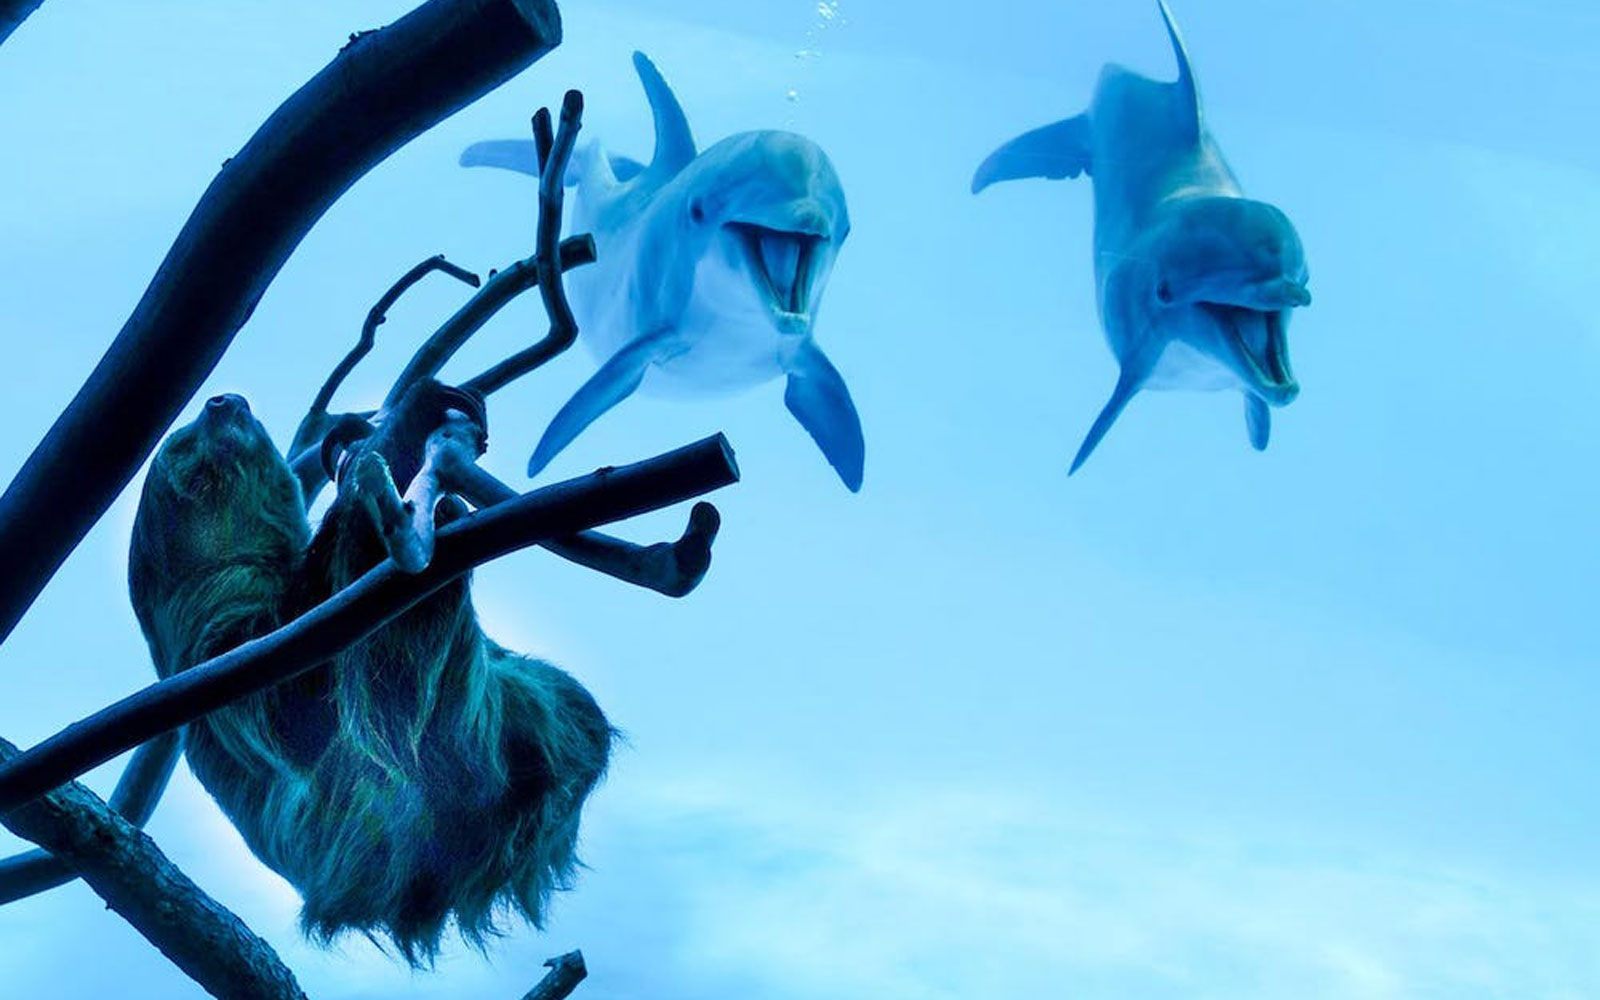 Liko and Schooner the dolphins, Chico the sloth